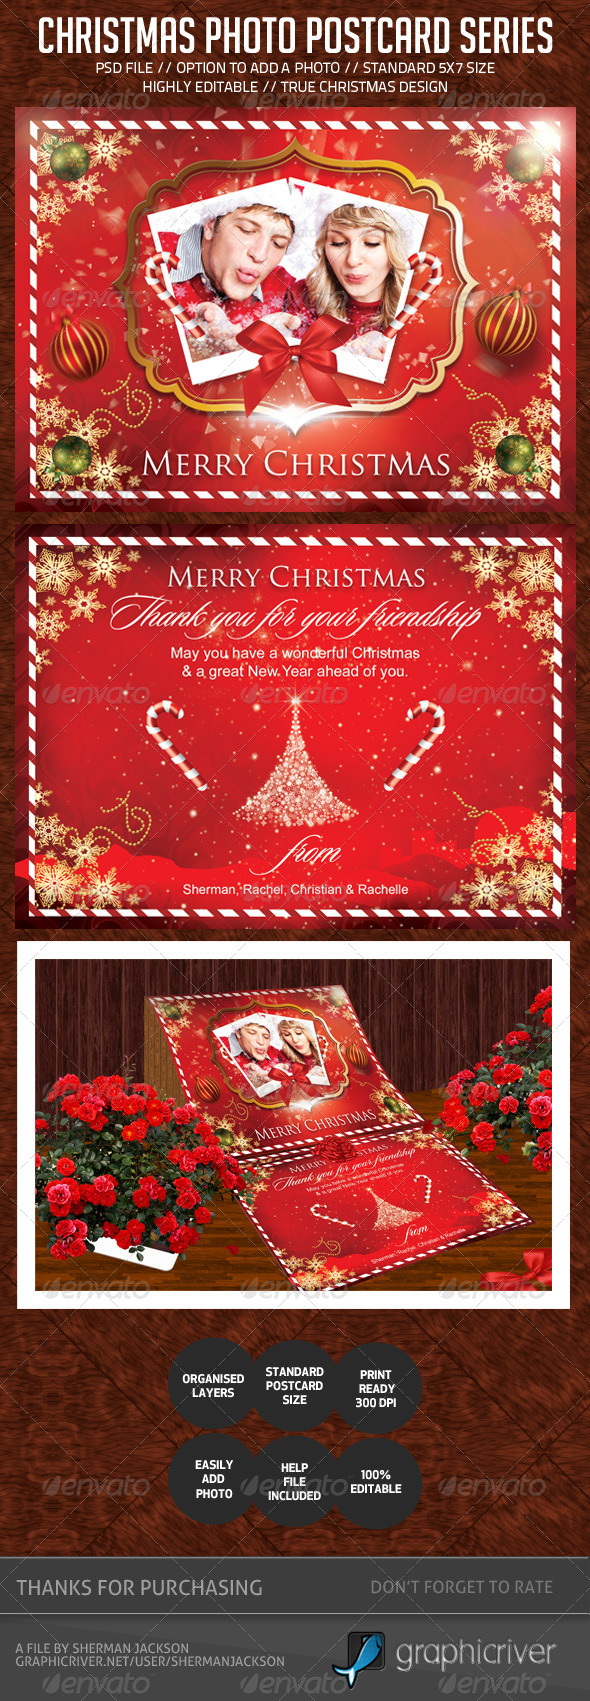 GraphicRiver Christmas Holiday Photo Postcard 6284967